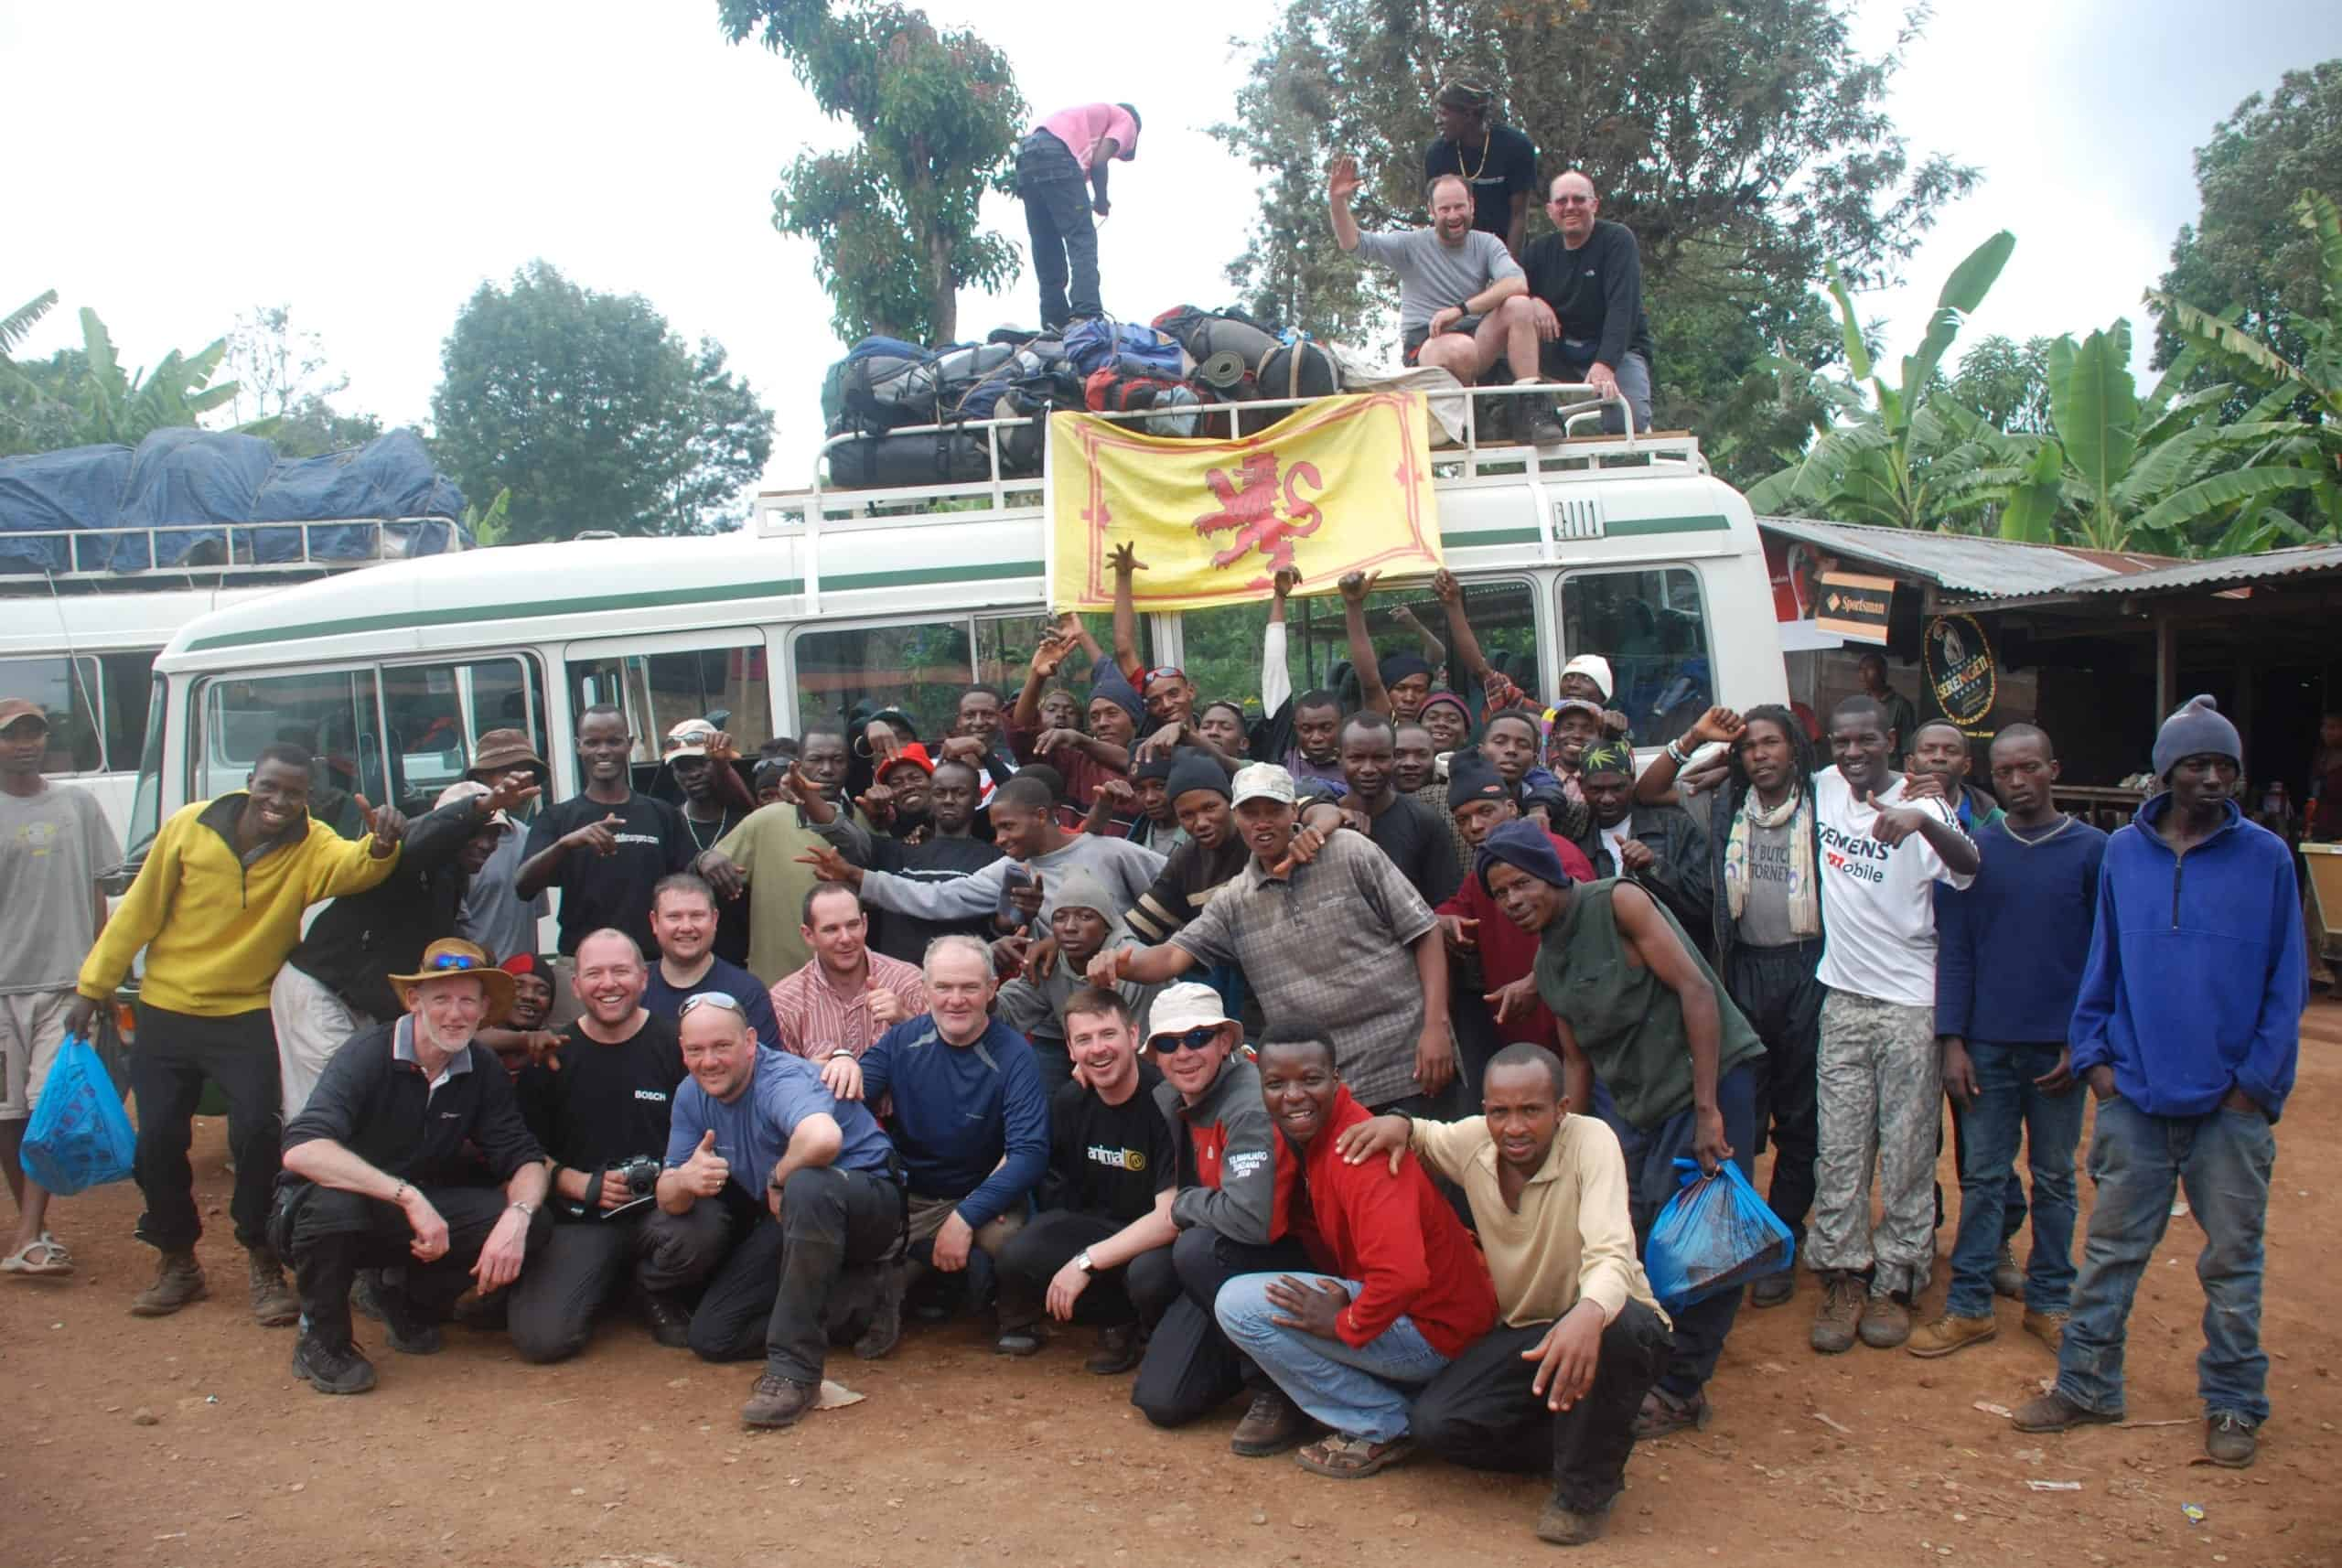 Large crowd of trekkers and porters in front of their coach at the end of their successful trek with Scottish flag draped from bus roof rack